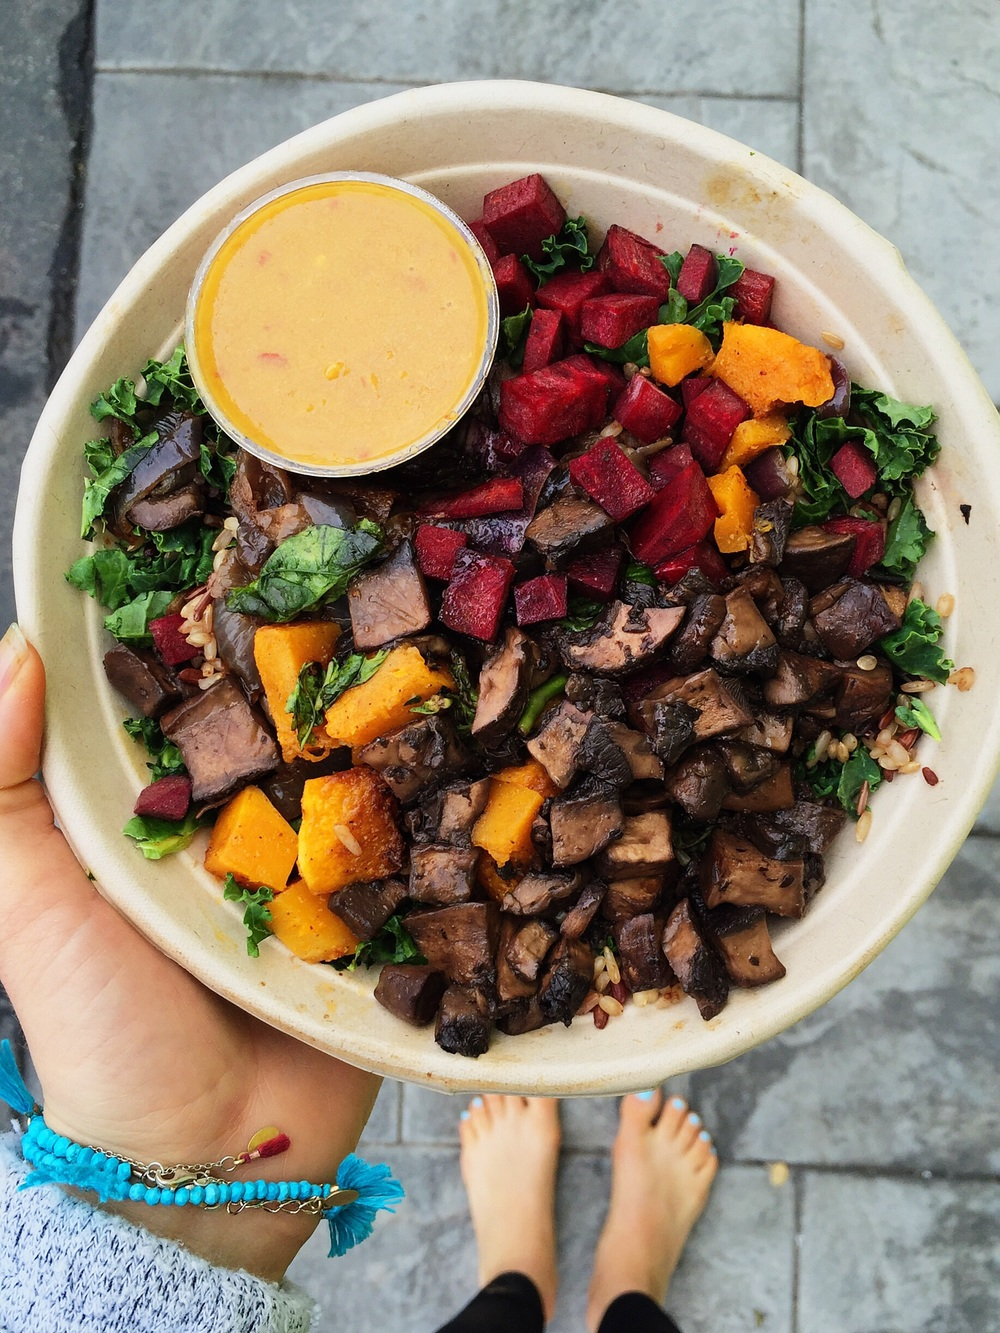 Portobello wild rice salad from Sweetgreen in Santa Monica